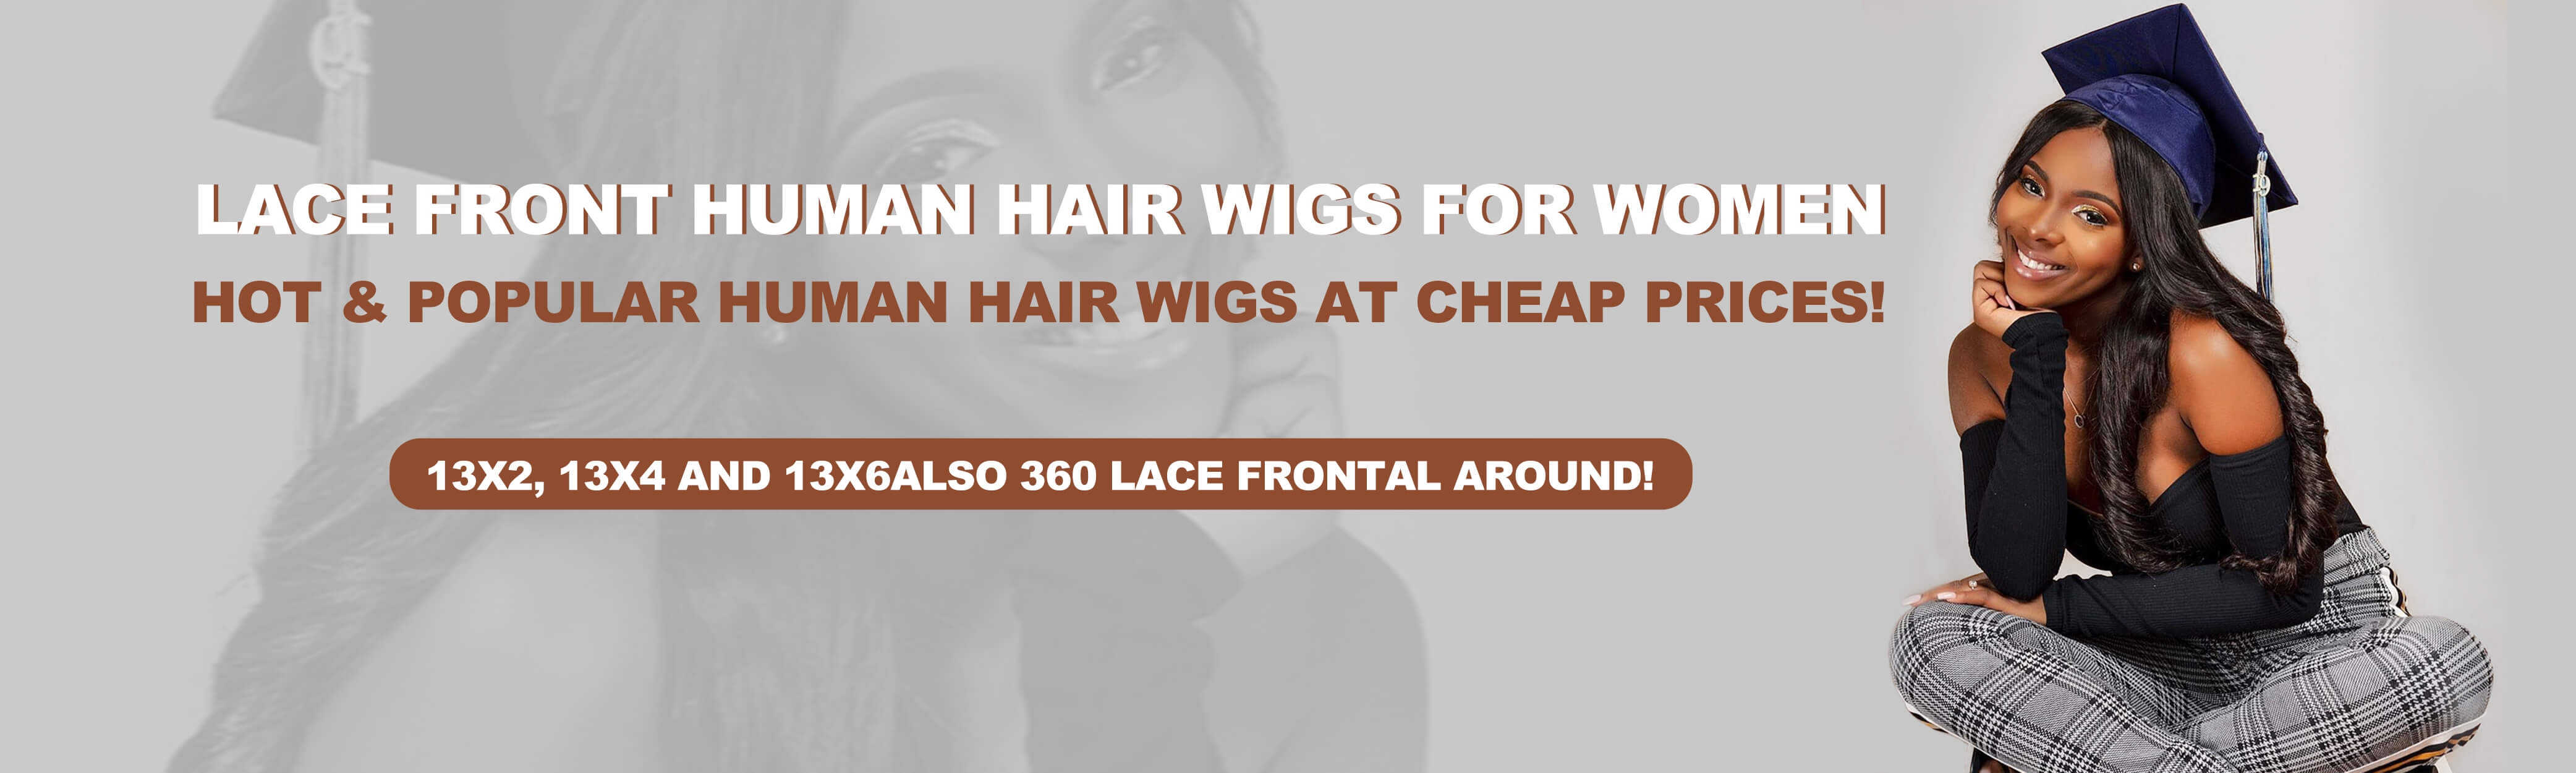 humna hair wigs vendors for women